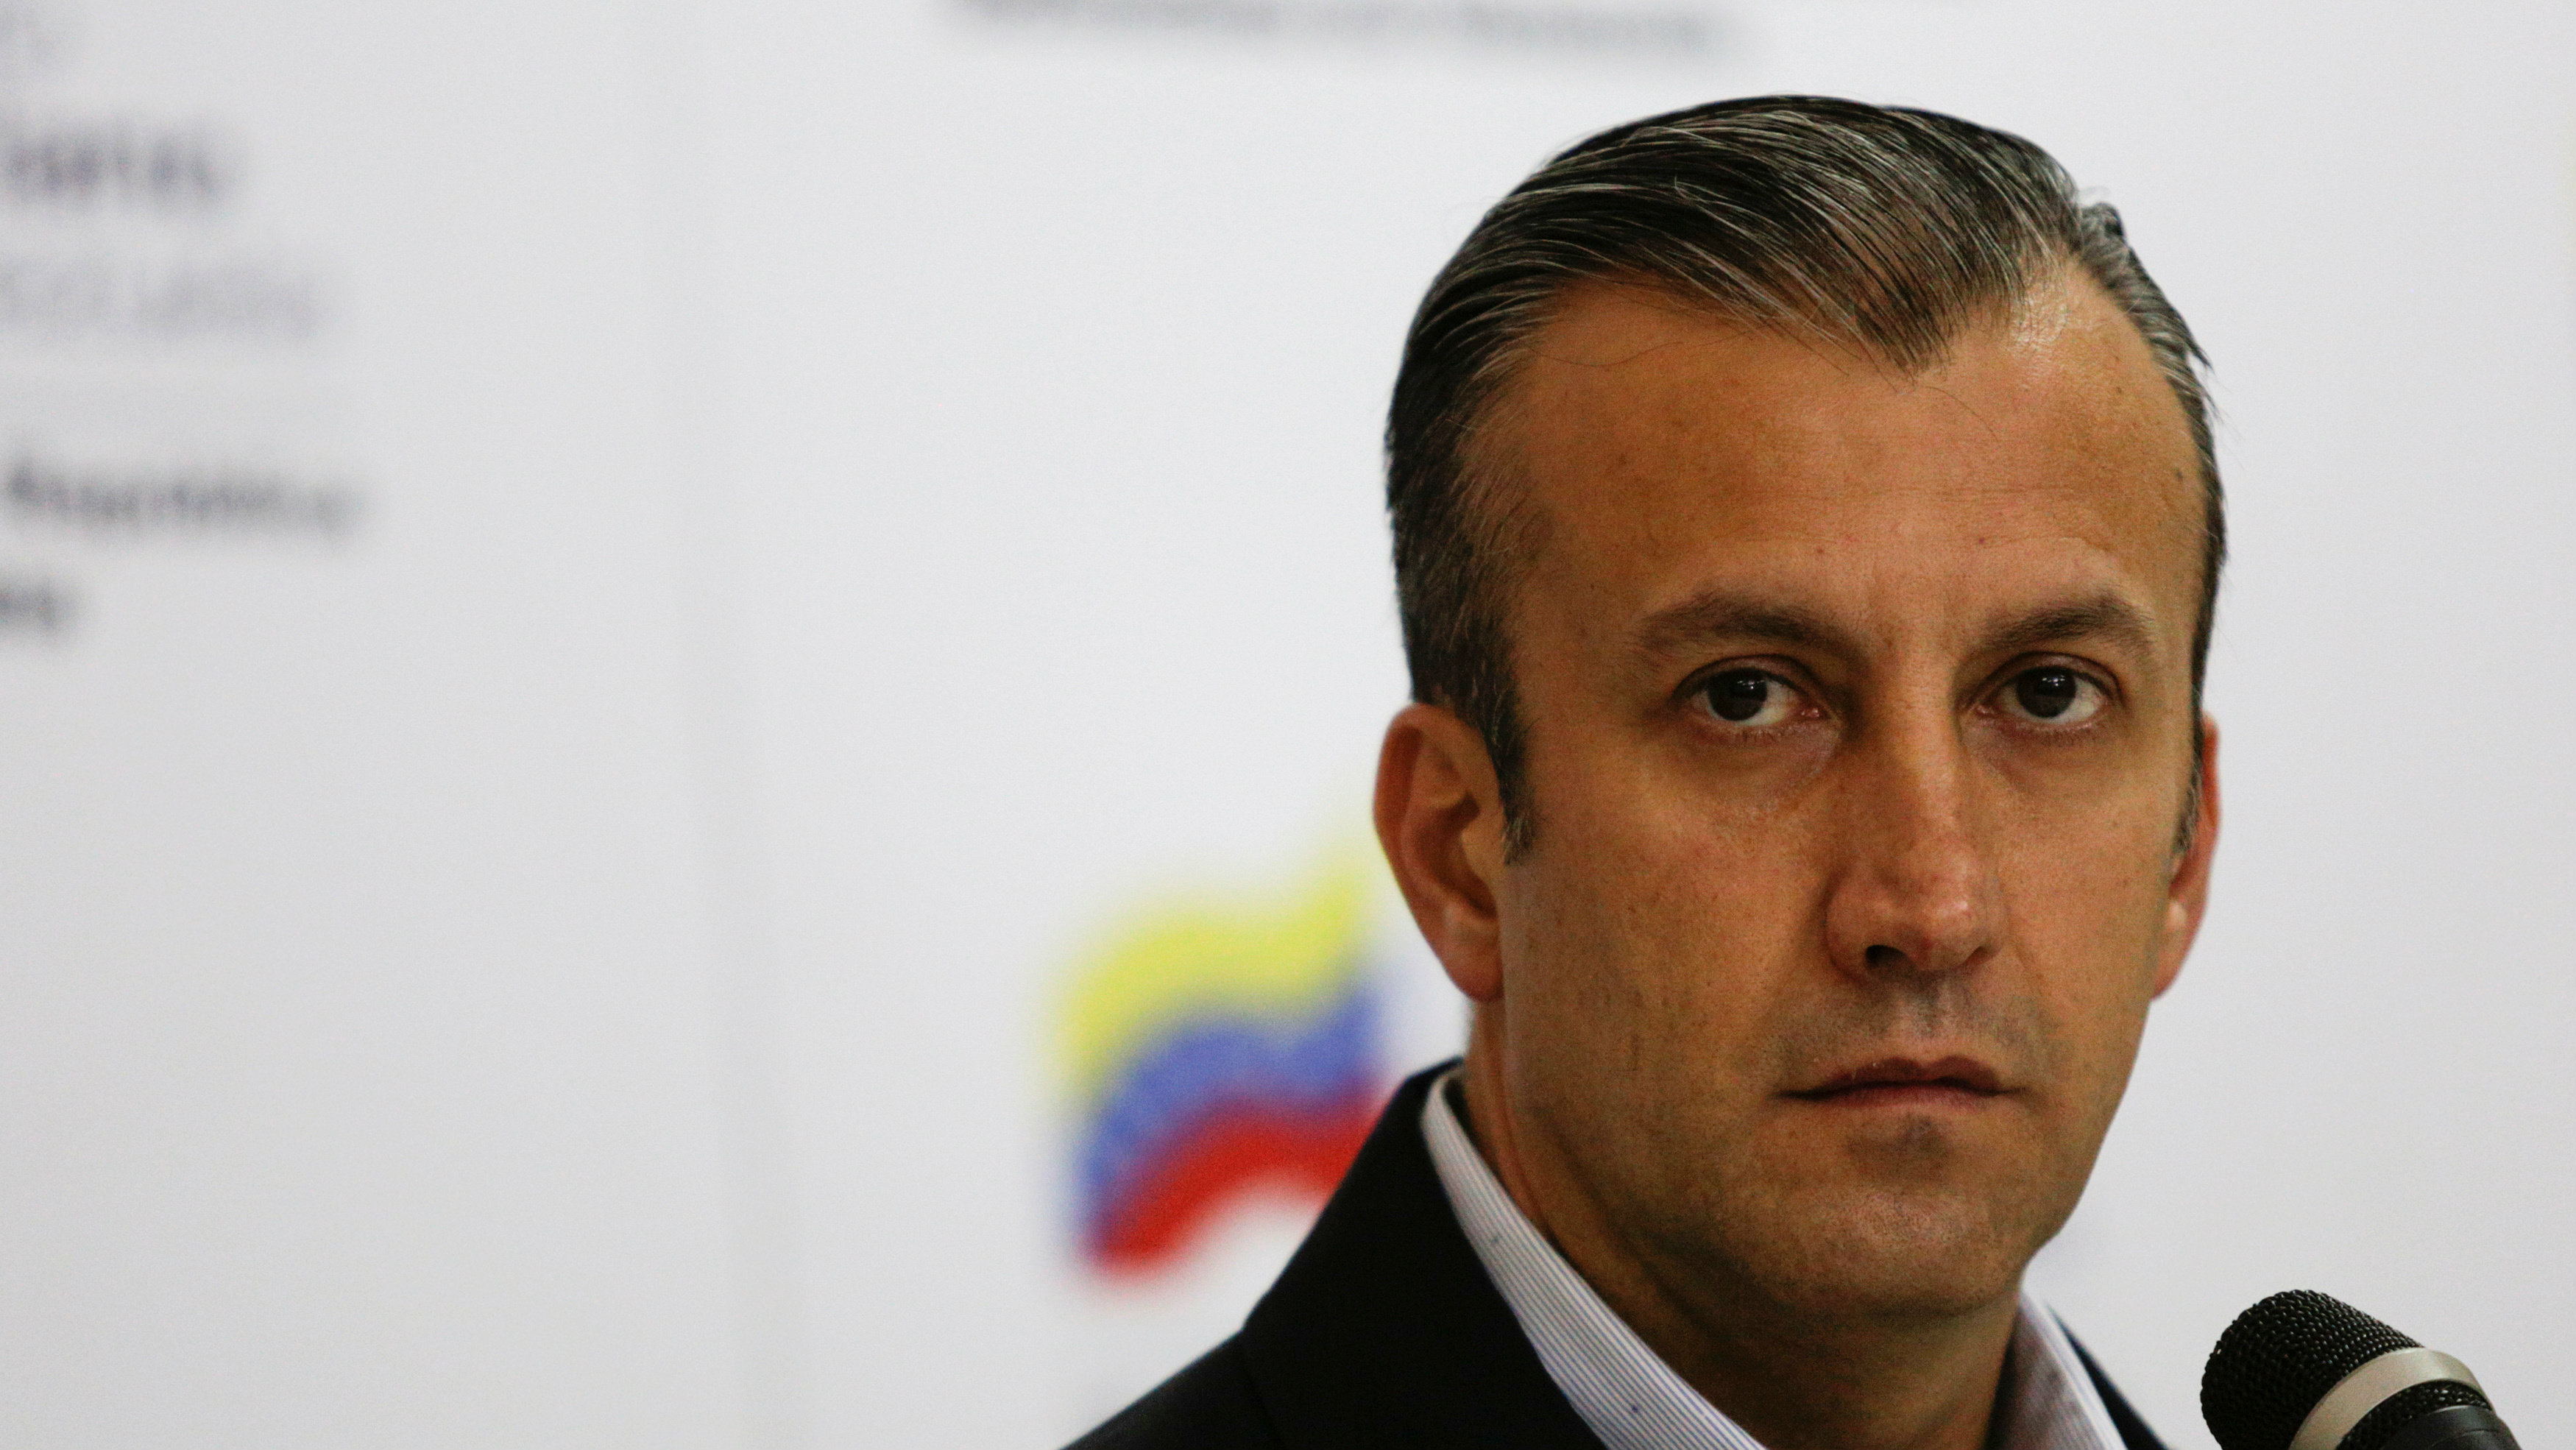 Venezuela's Vice President Tareck El Aissami pauses as he talks to the media during a news conference in Caracas, Venezuela April 6, 2017.